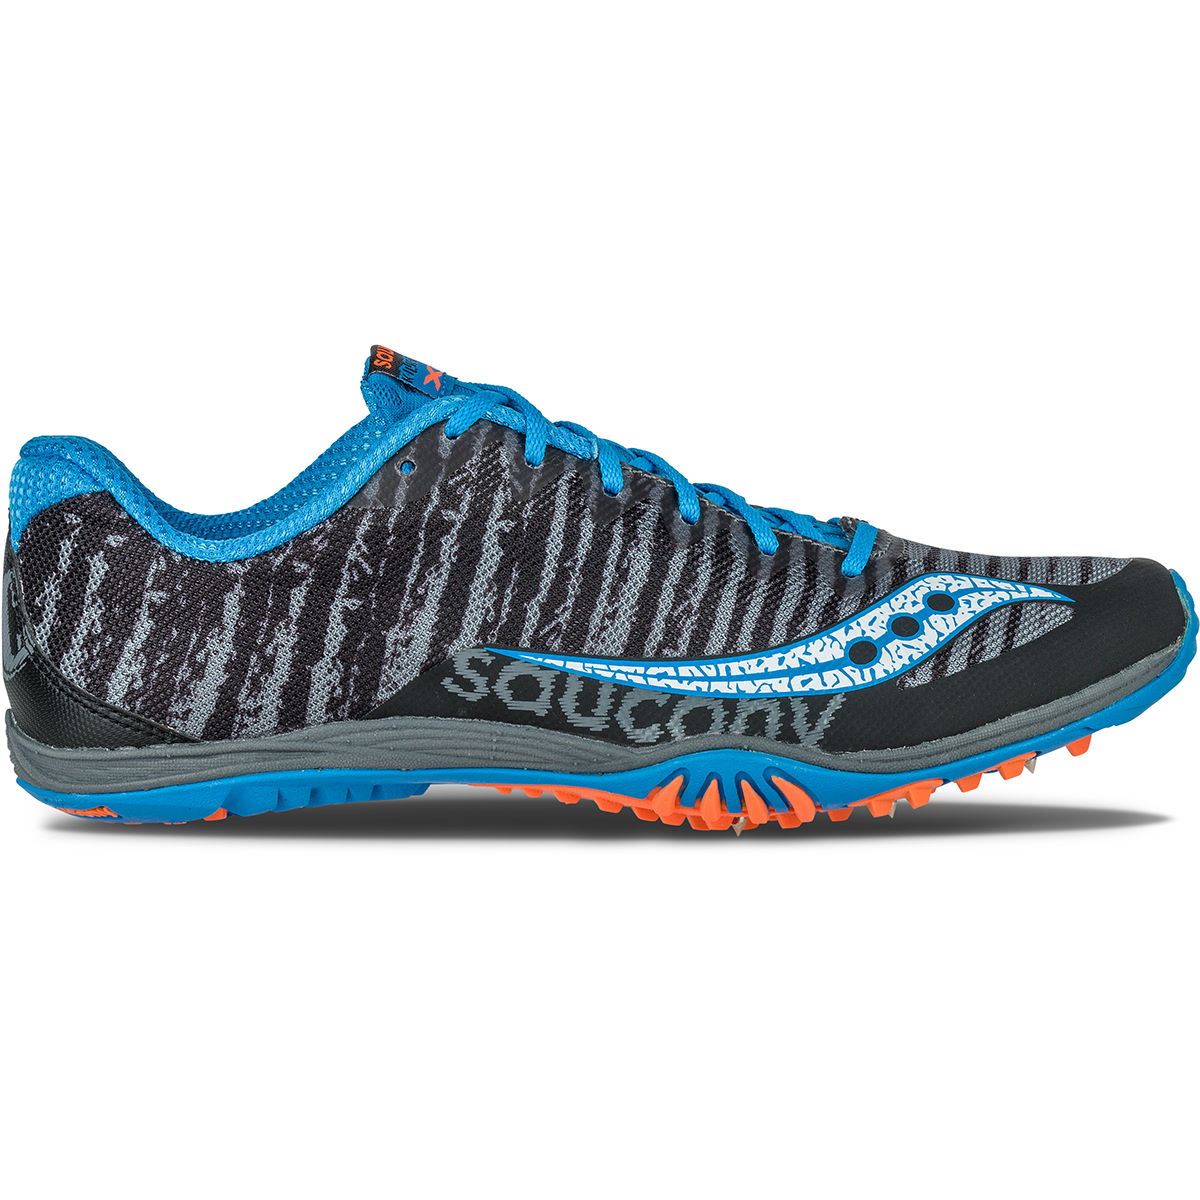 Chaussures de cross-country Saucony Kilkenny (AH16) - 6 UK Black/Carolina Chaussures de running à pointes